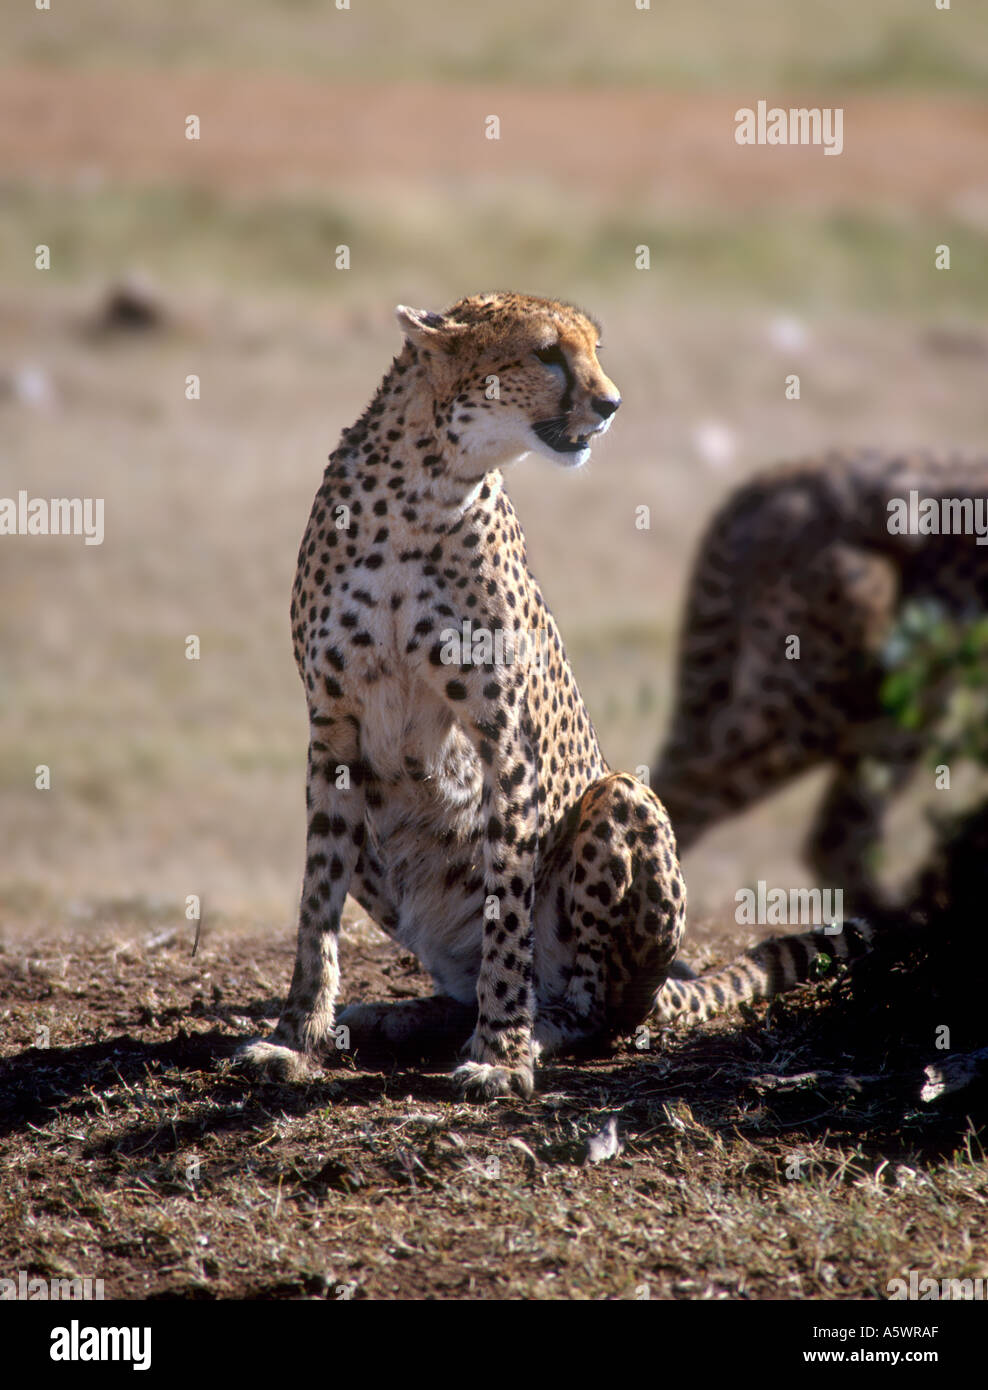 Cheetah in the Masai Mara Nature Reserve, Kenya, East Africa - Stock Image